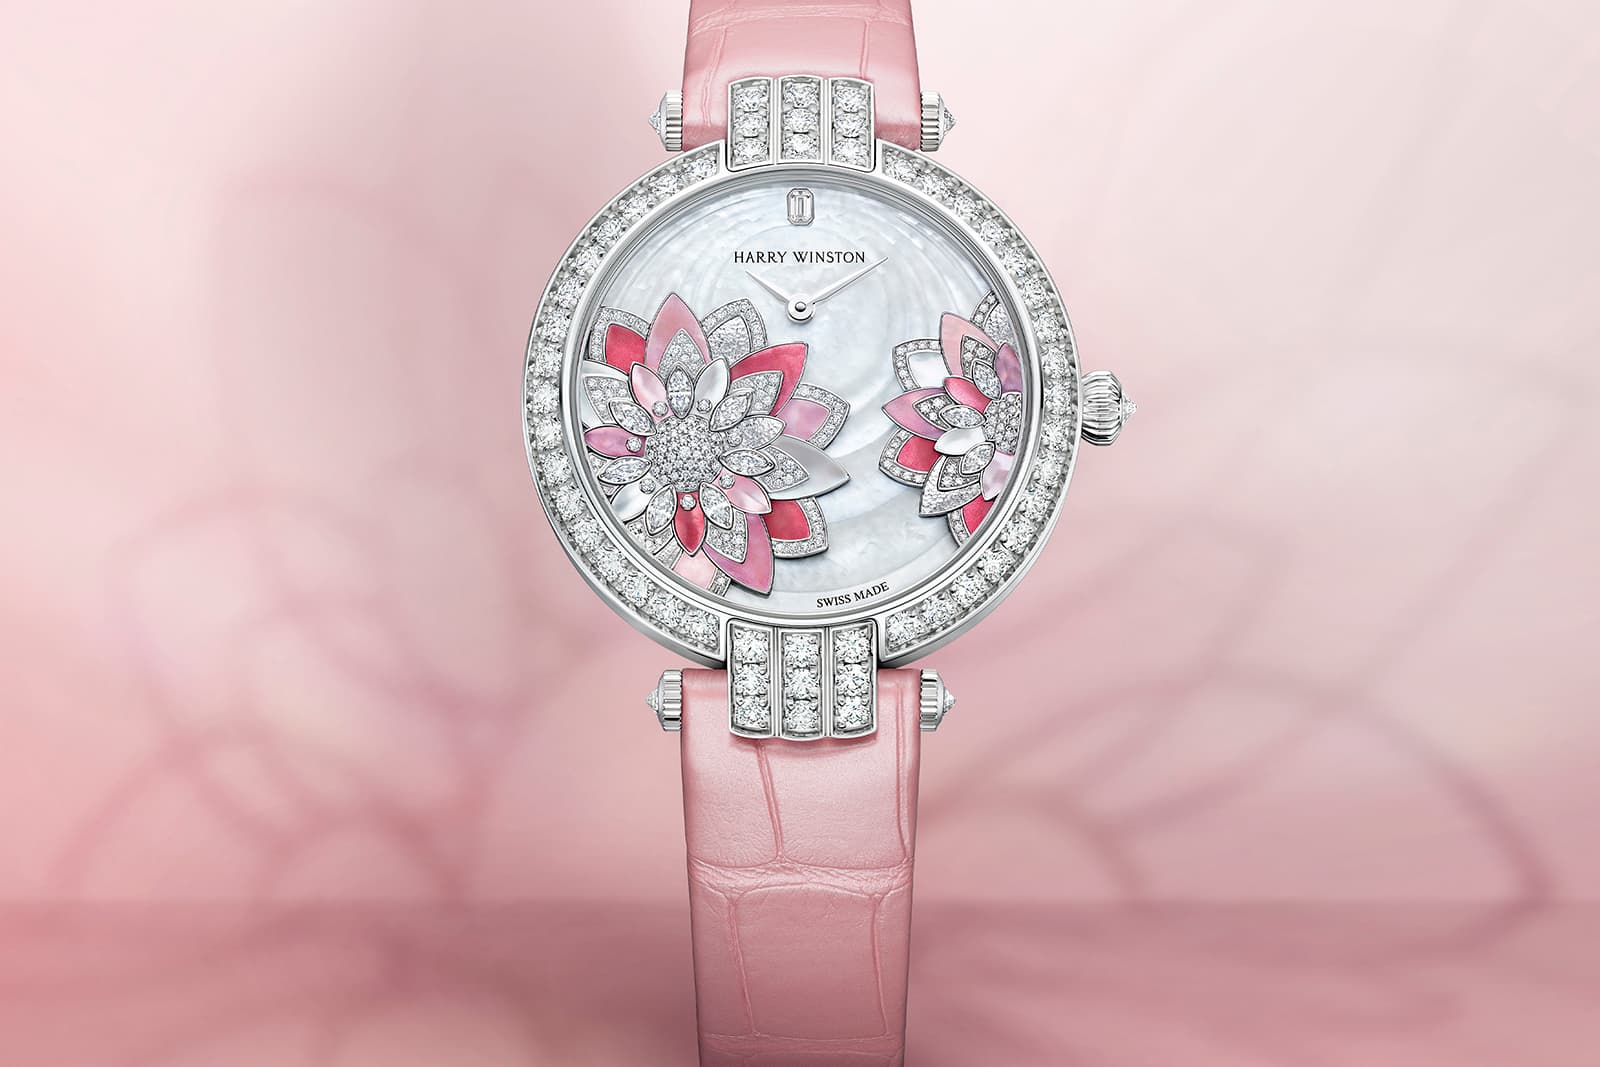 The new Harry Winston Premier Lotus Automatic 36mm watch featuring mother of pearl and diamonds, set to form the delicate lotus flower